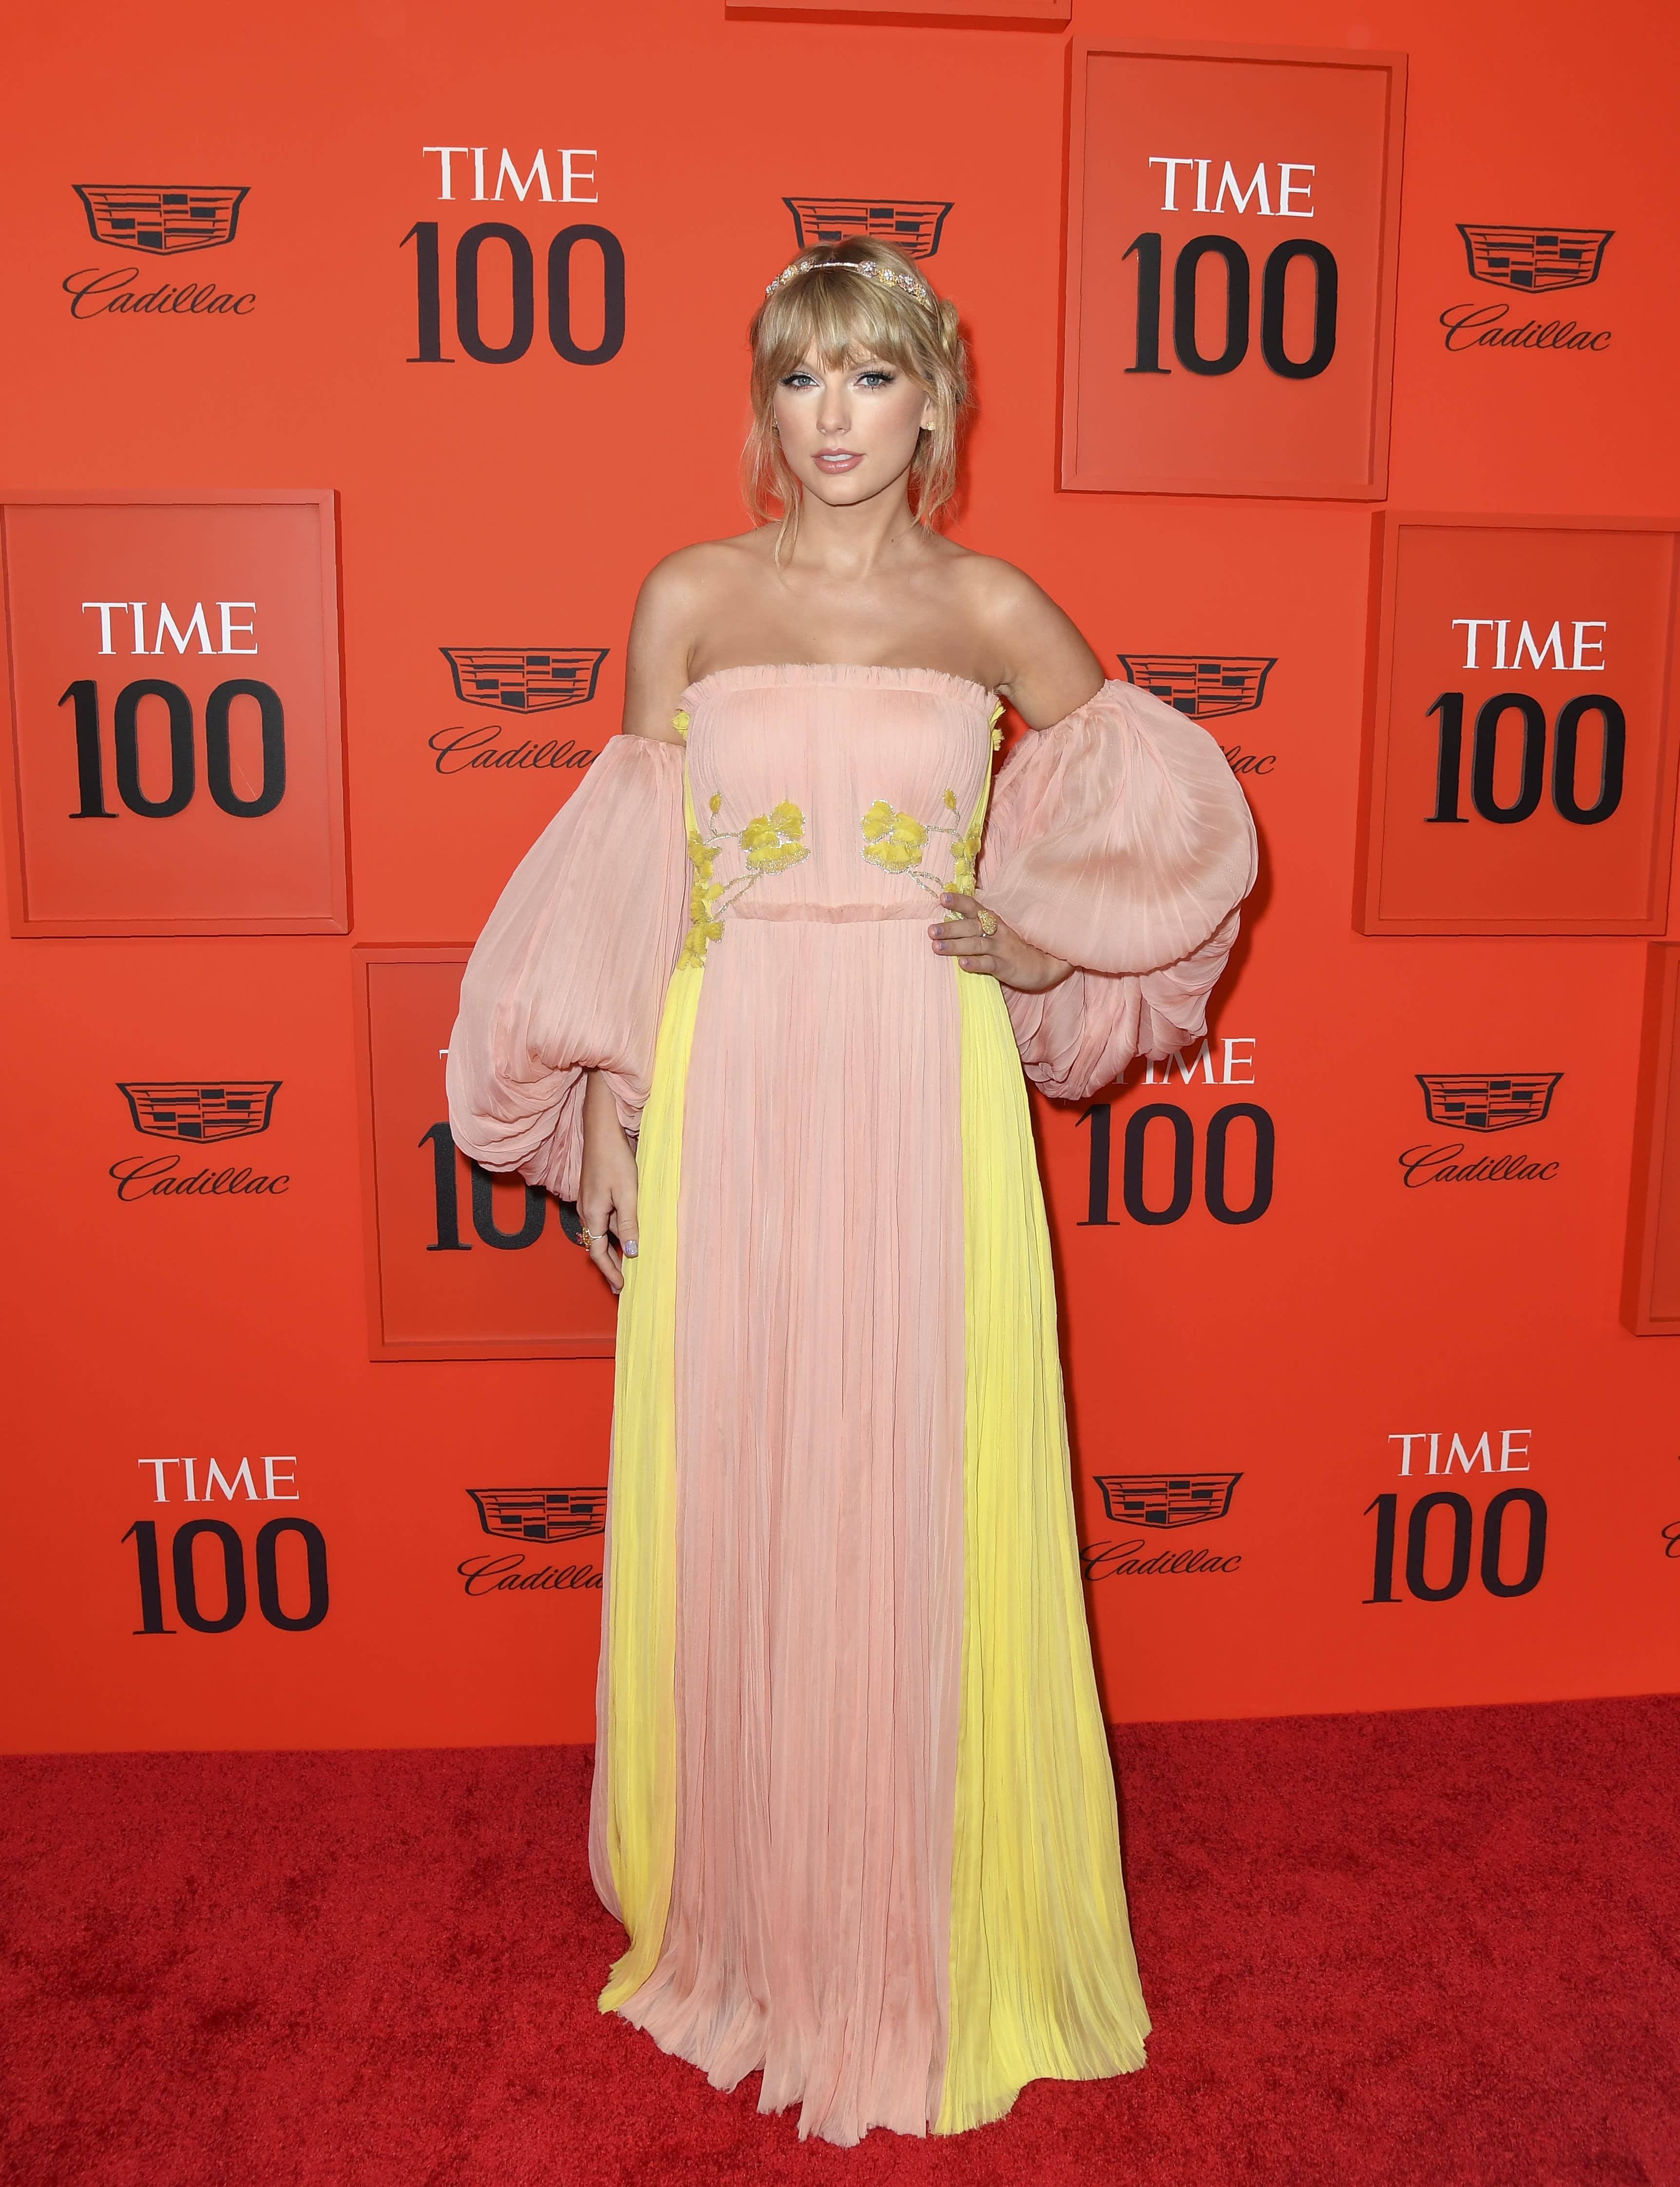 Singer Taylor Swift arrives on the red carpet for the Time 100 Gala at the Lincoln Center in New York on April 23, 2019